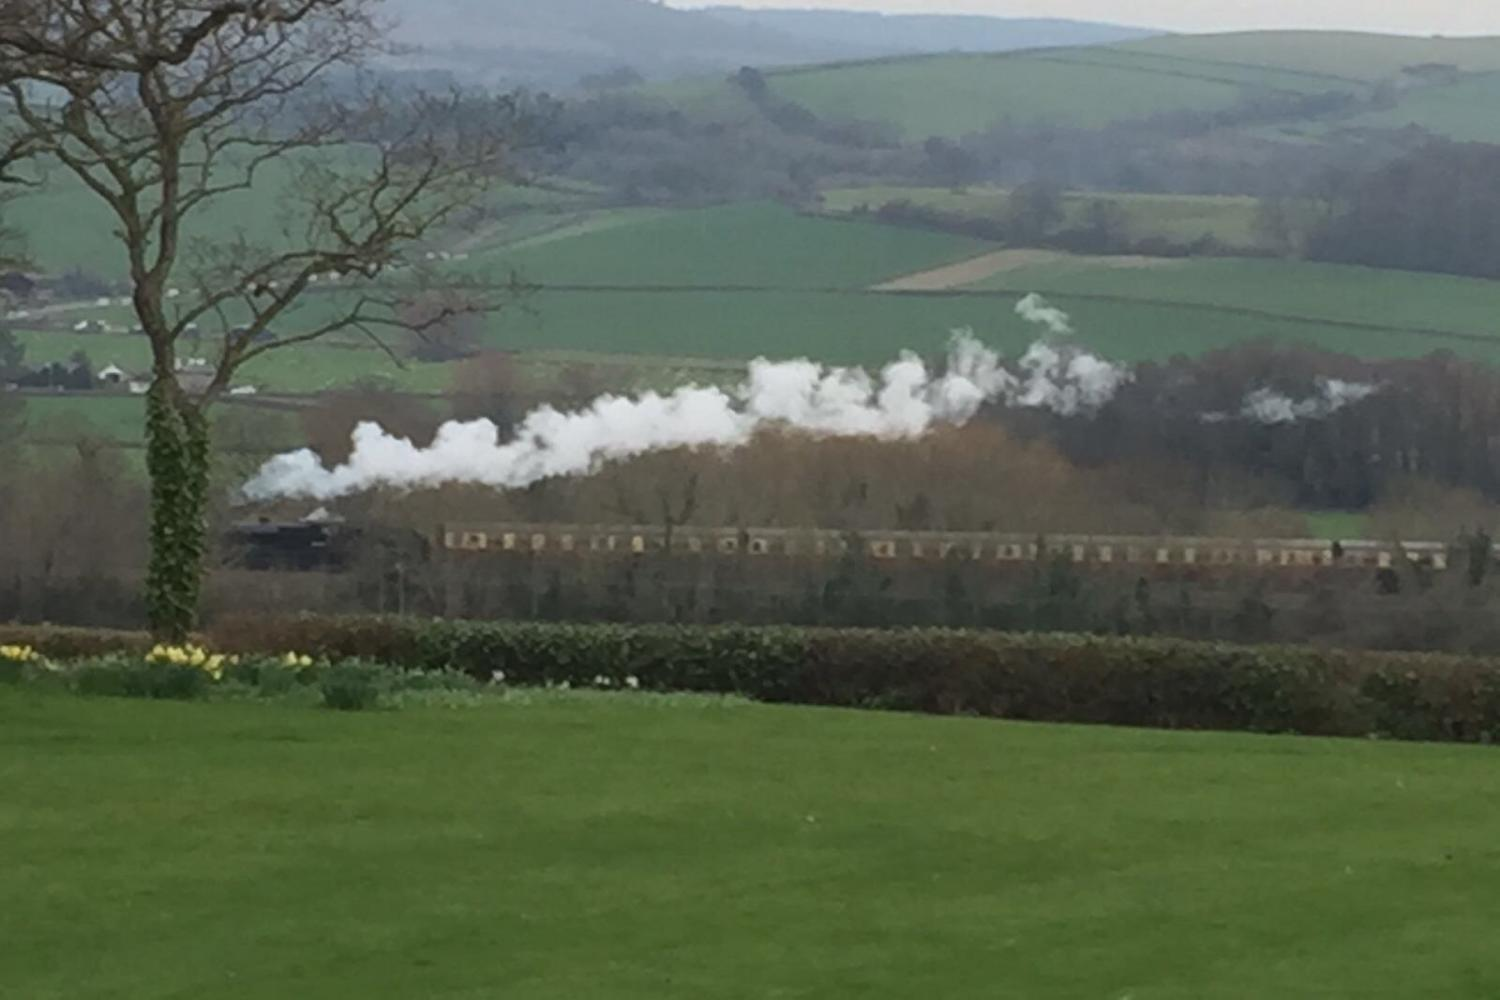 West Somerset Steam Railway runs nearby